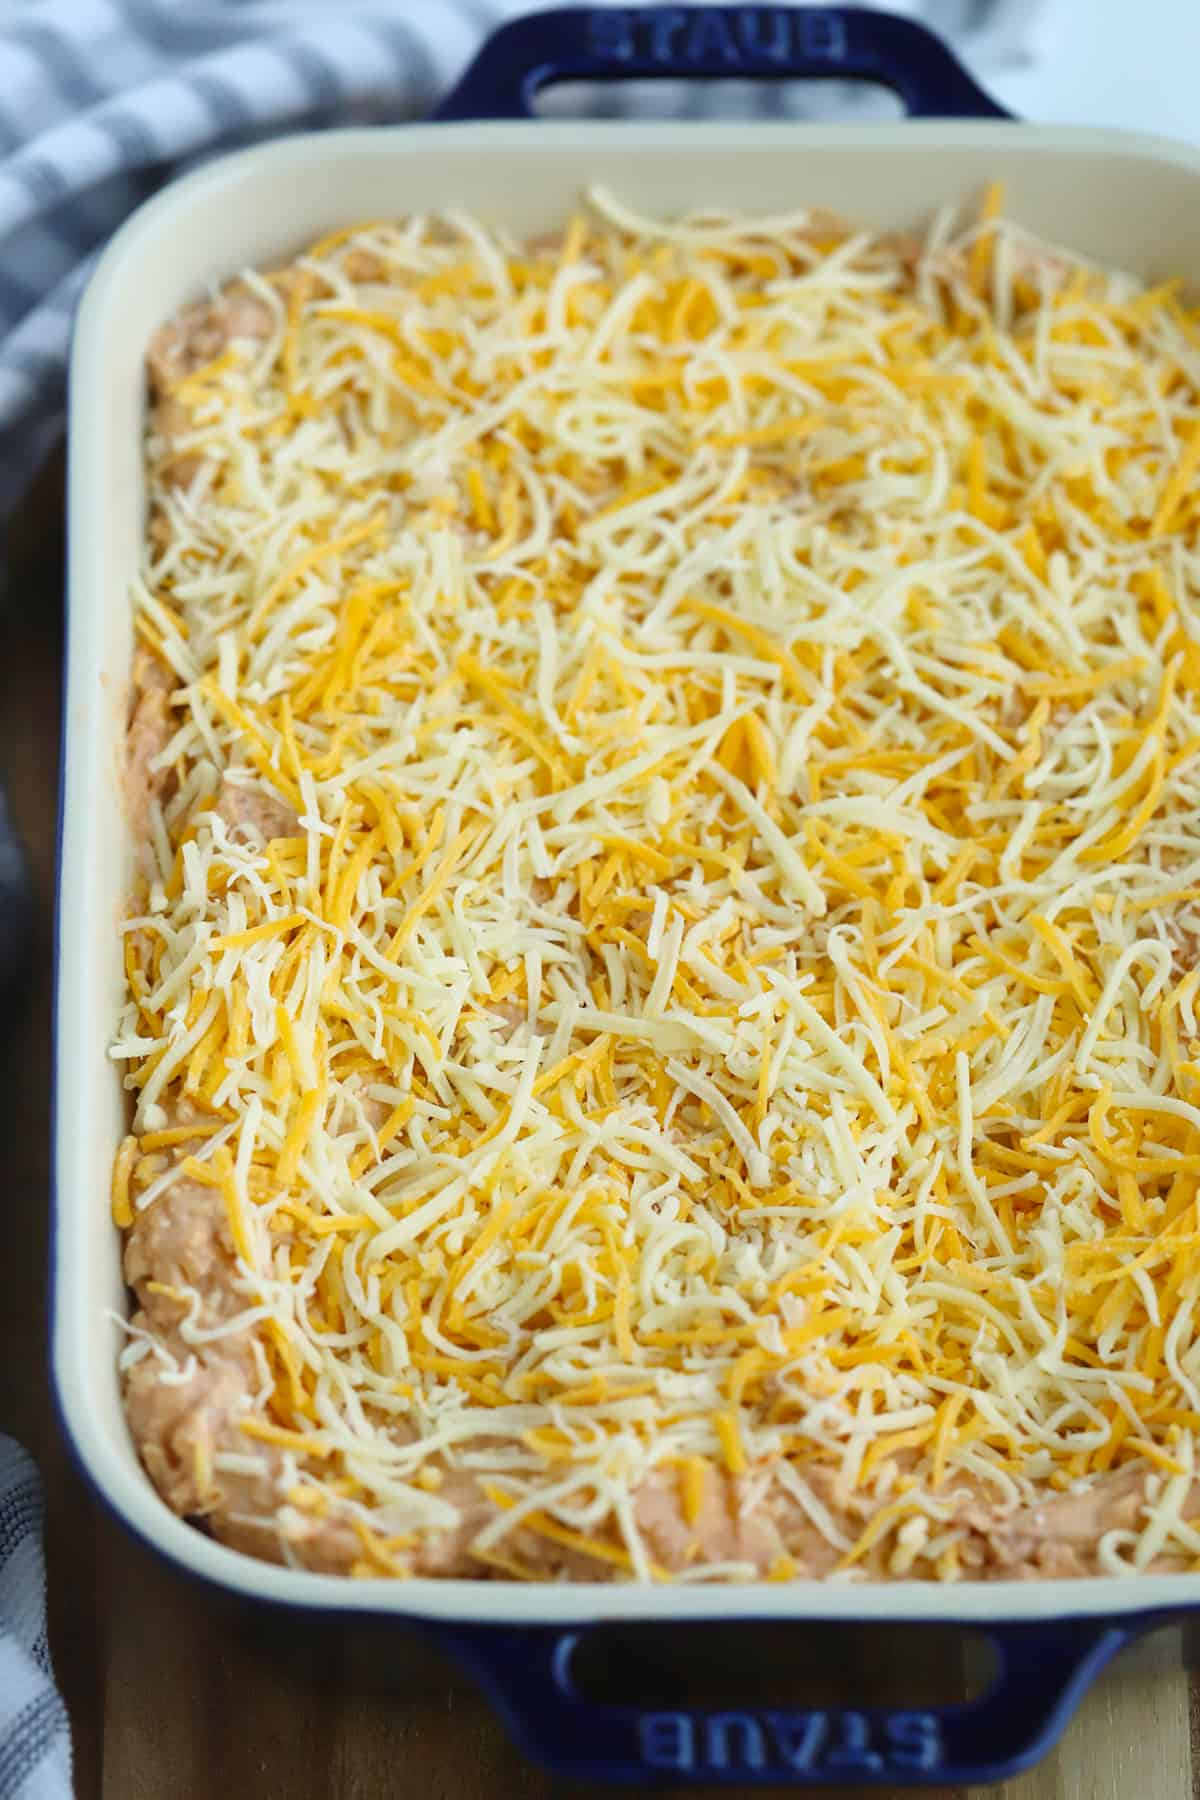 A baking dish filled with a refried bean mixture and topped with shredded cheese.